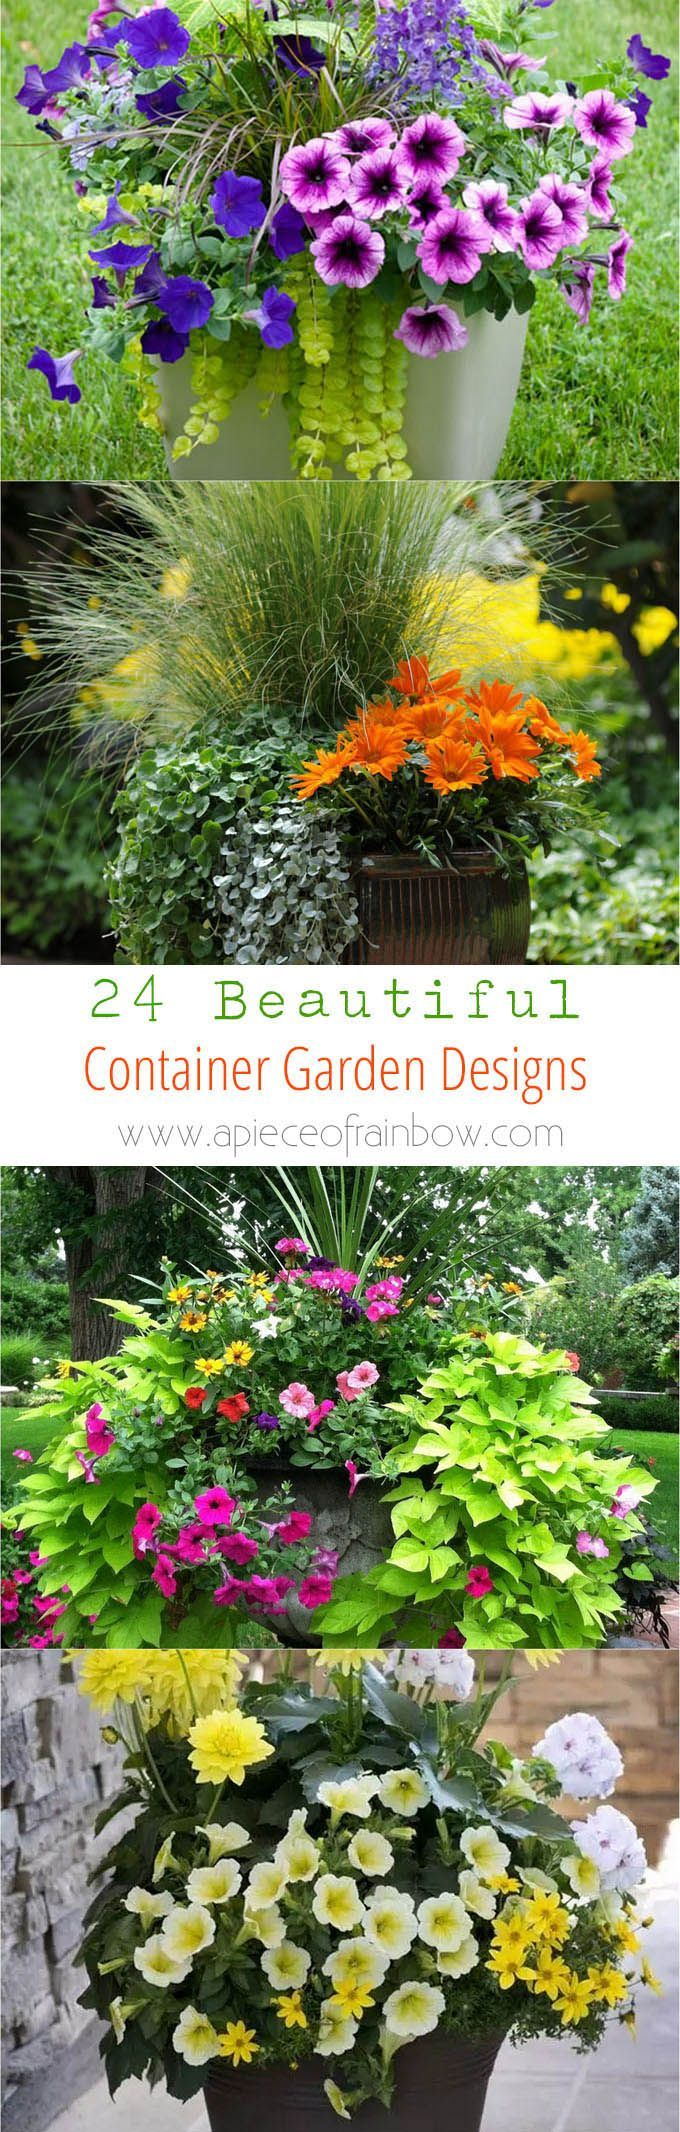 24 stunning container garden designs with plant list for each! Learn the designer secrets to these beautiful planting recipes